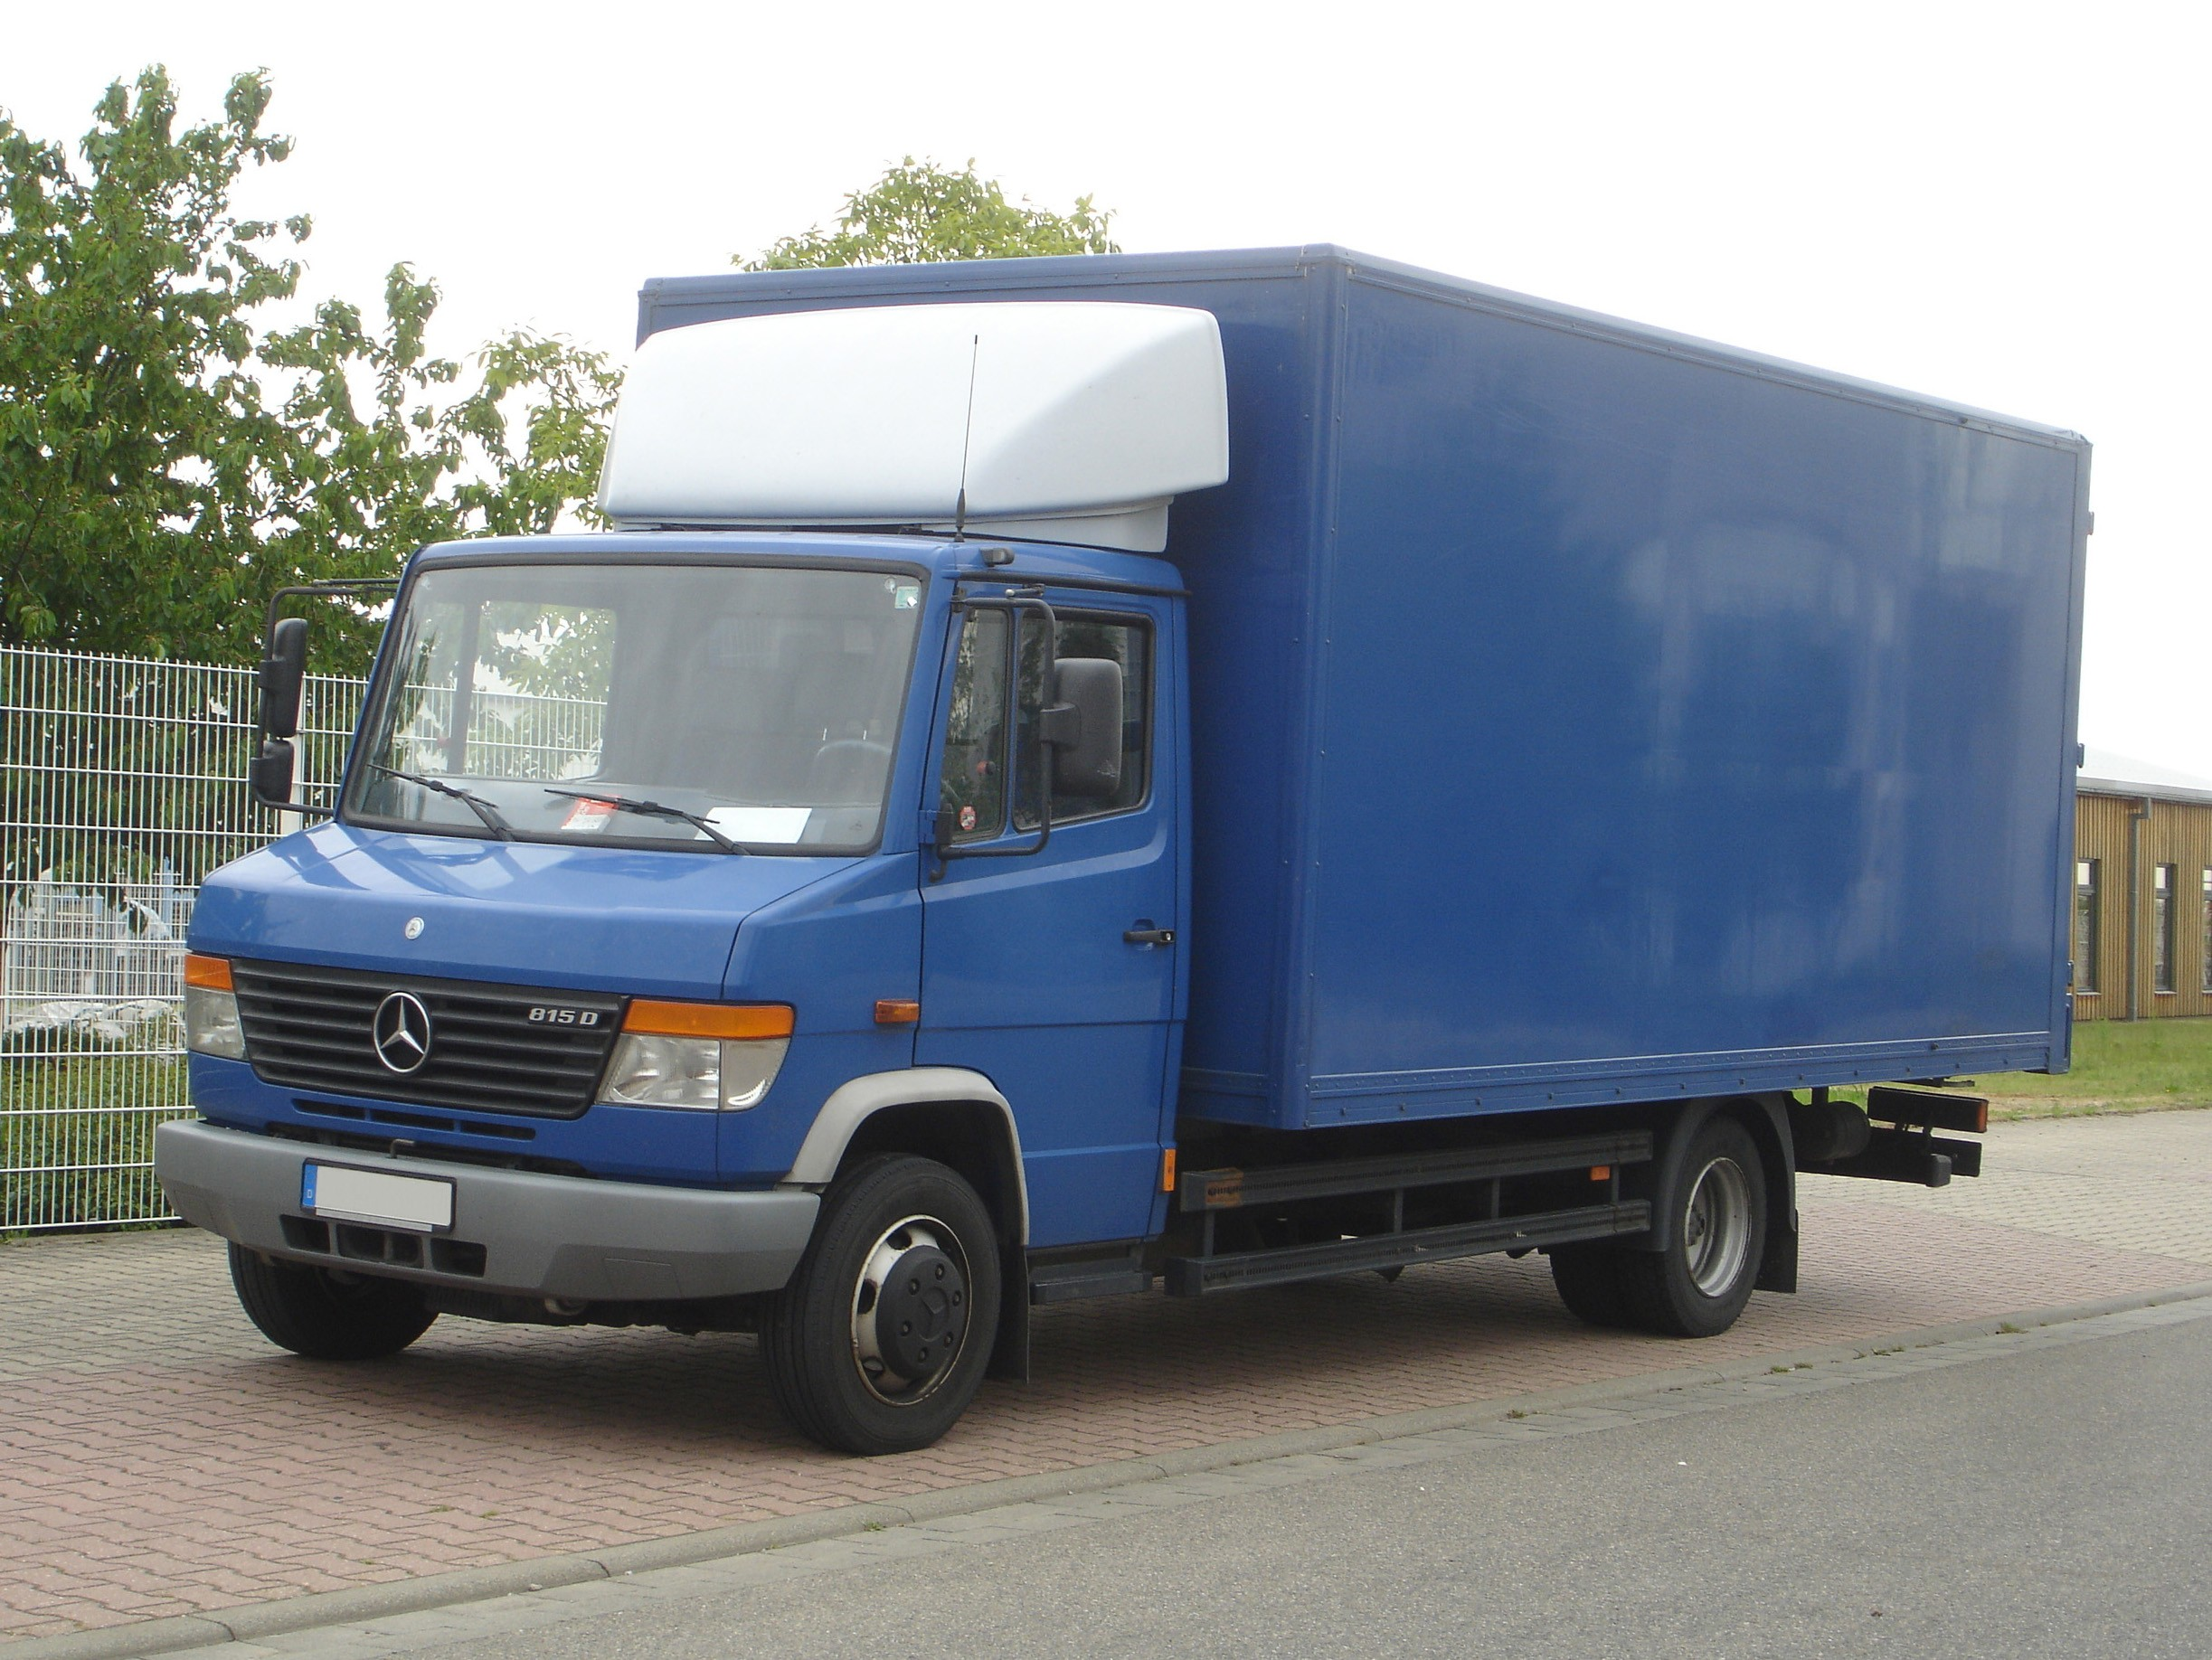 Mercedes-benz 815d photo - 4